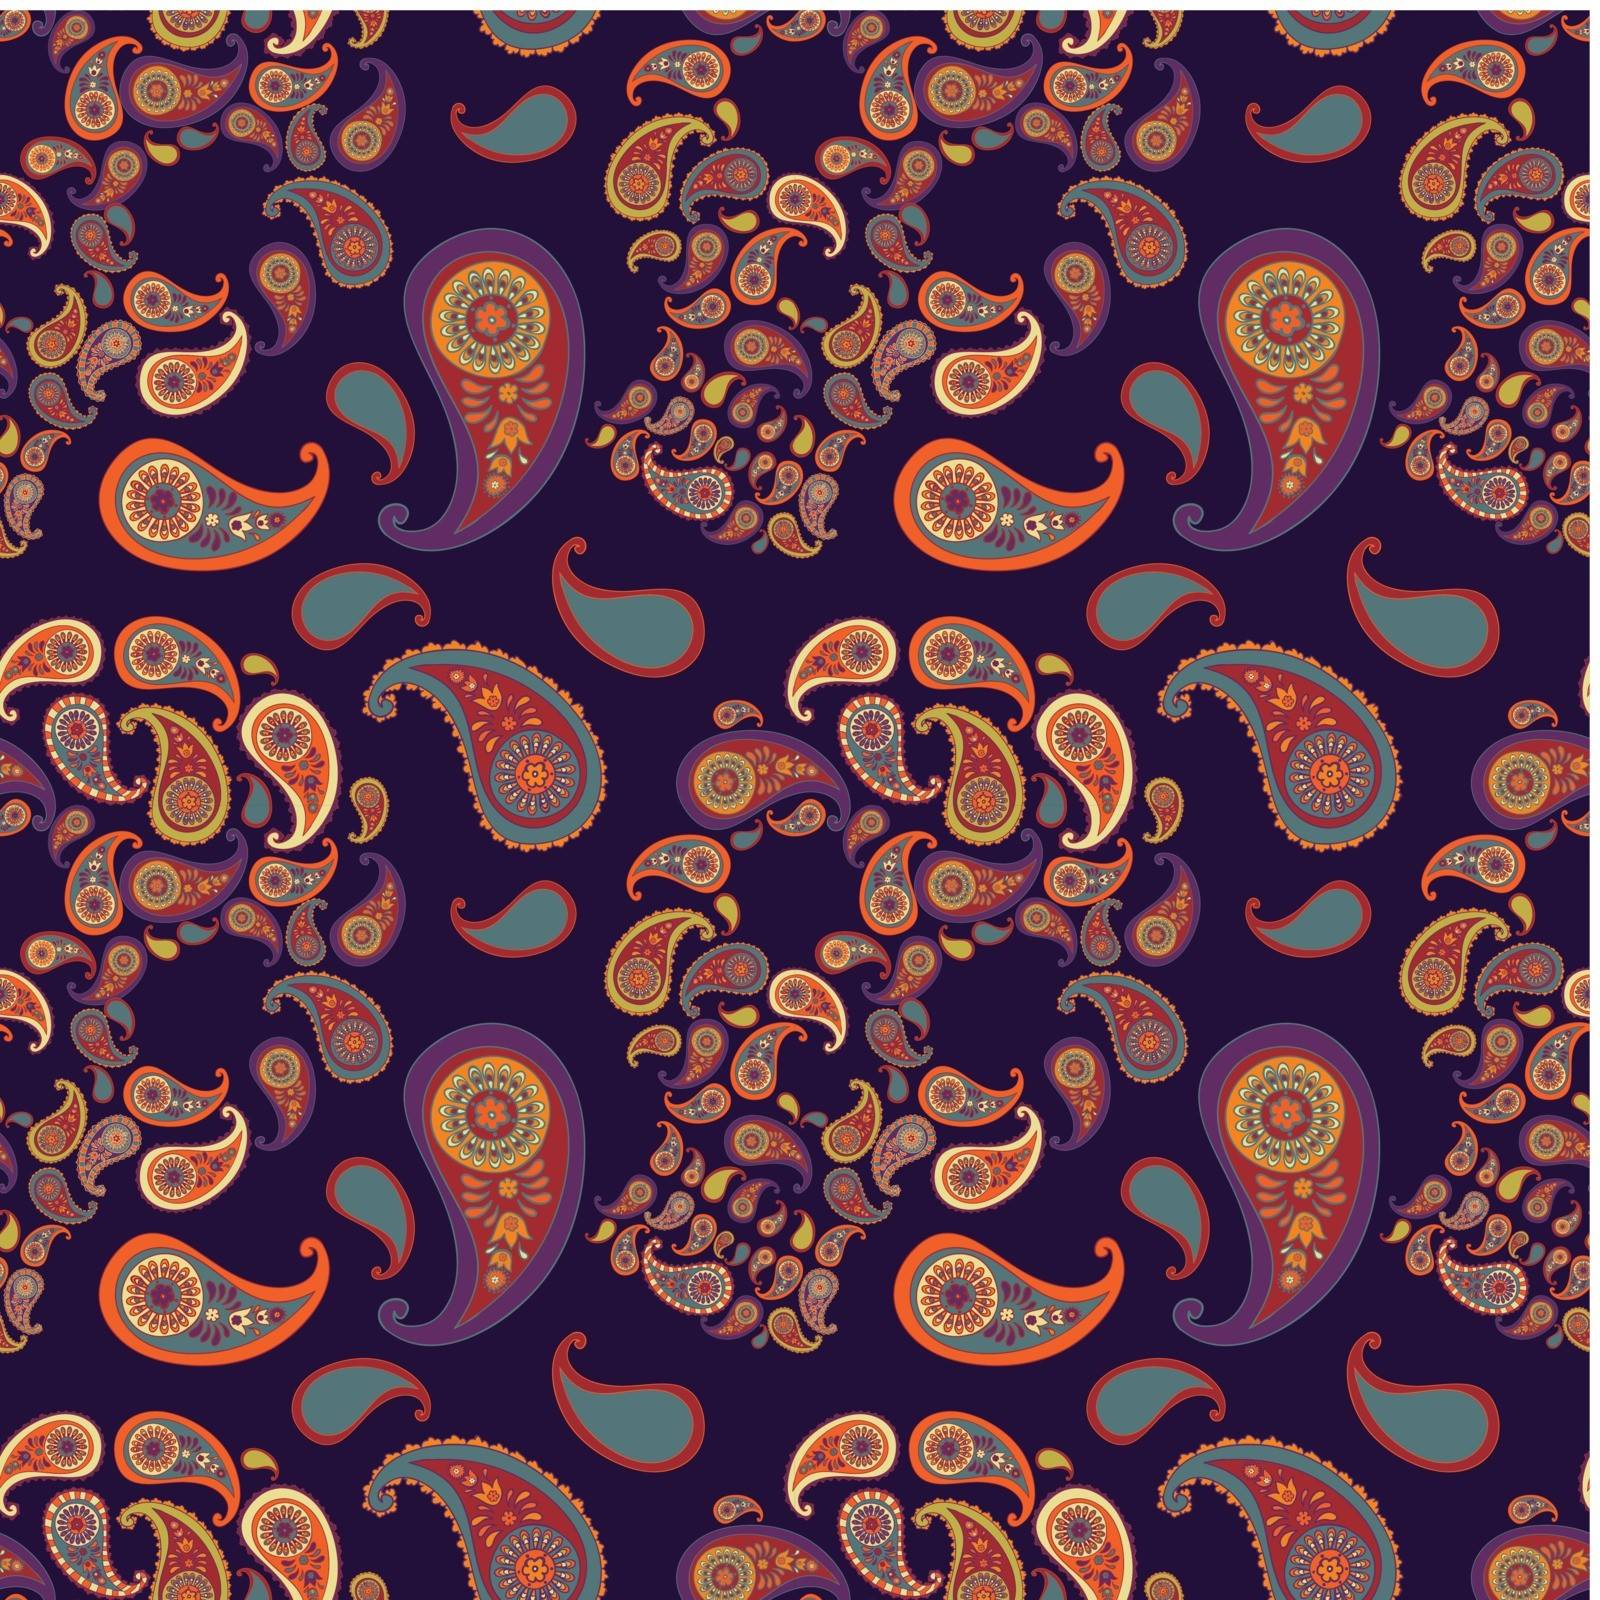 pattern with skulls and paisley